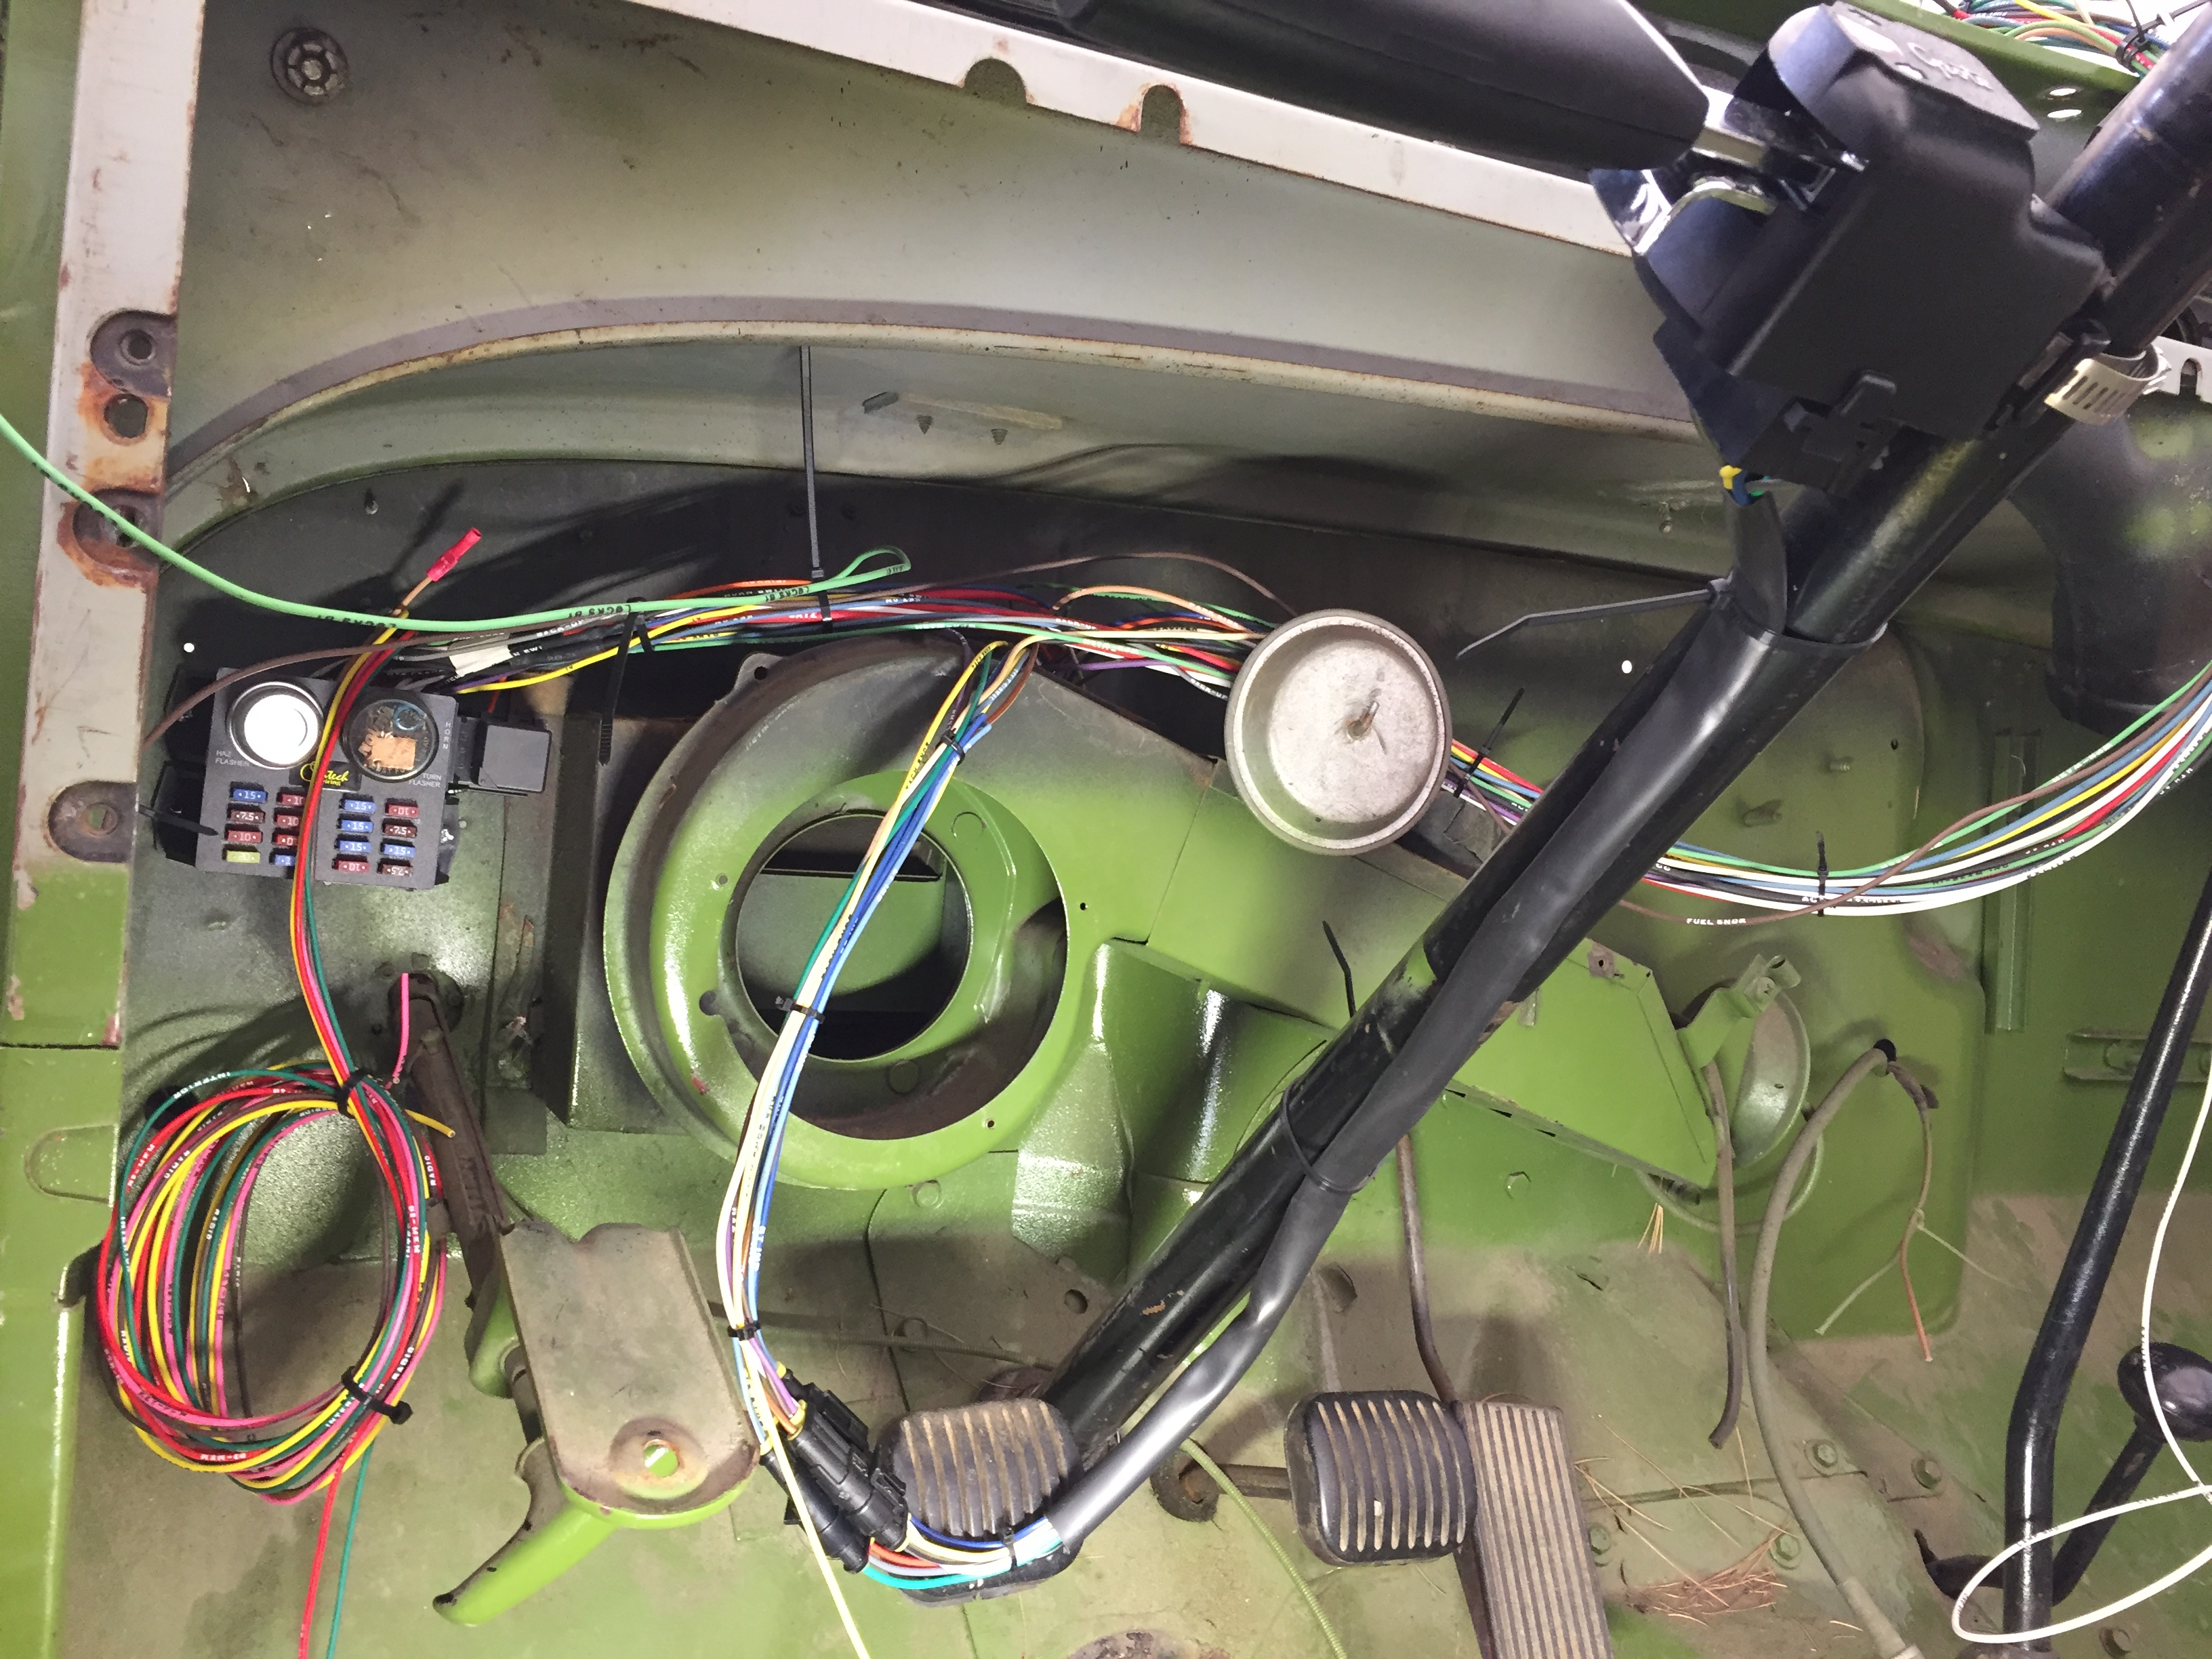 1966 Jeep Cj 5 Upgrades And Future Rebuild Vintage Vehicles Cen Tech Wiring Harness Been Plugging Away At This Its A Slow Process When One Is Gone Through The Week But Im Gaining